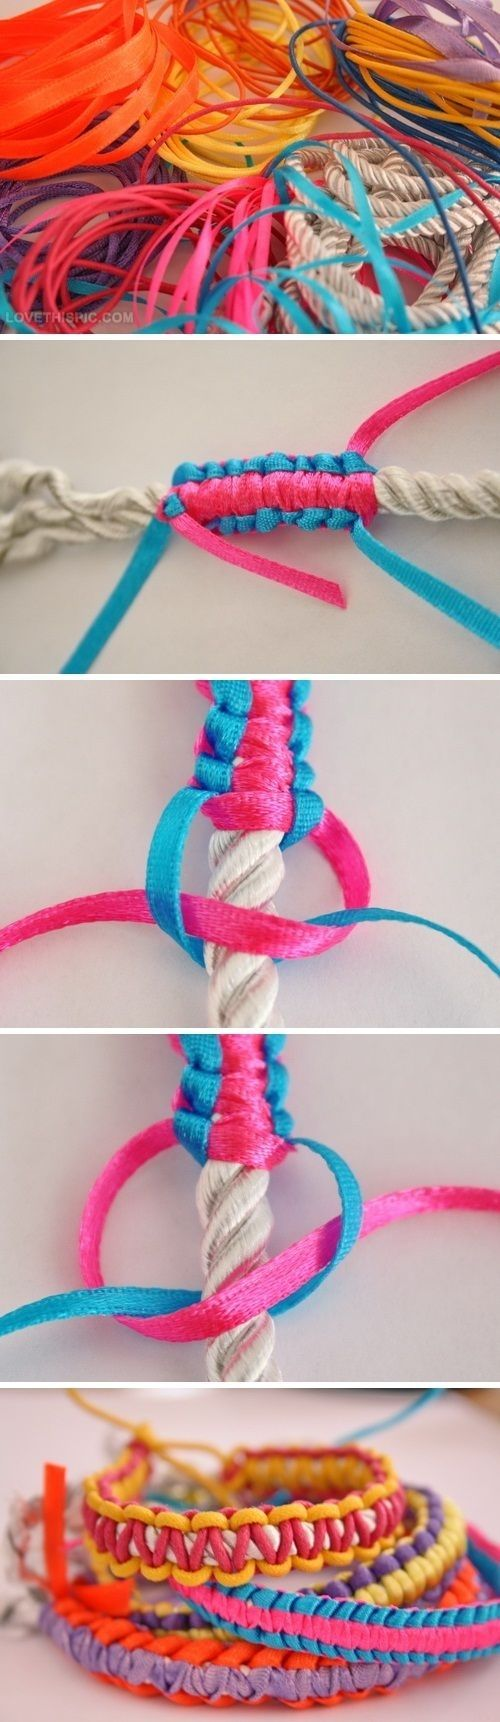 DIY Macrame Ribbon Bracelet Pictures, Photos, and Images for Facebook, Tumblr, Pinterest, and Twitter